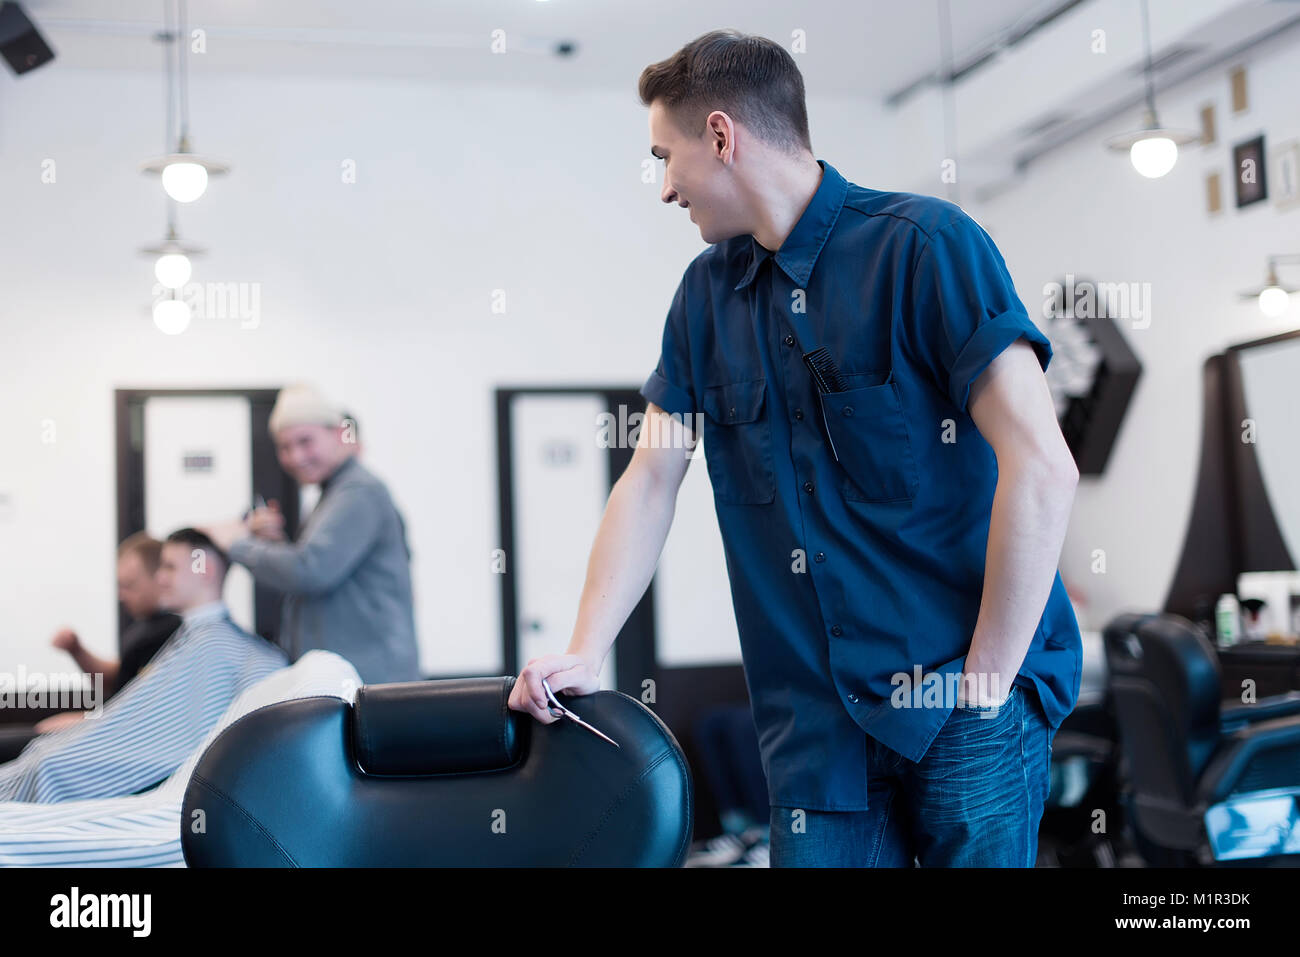 Barber on the chair. Barber expects the client to sit in the chair. - Stock Image